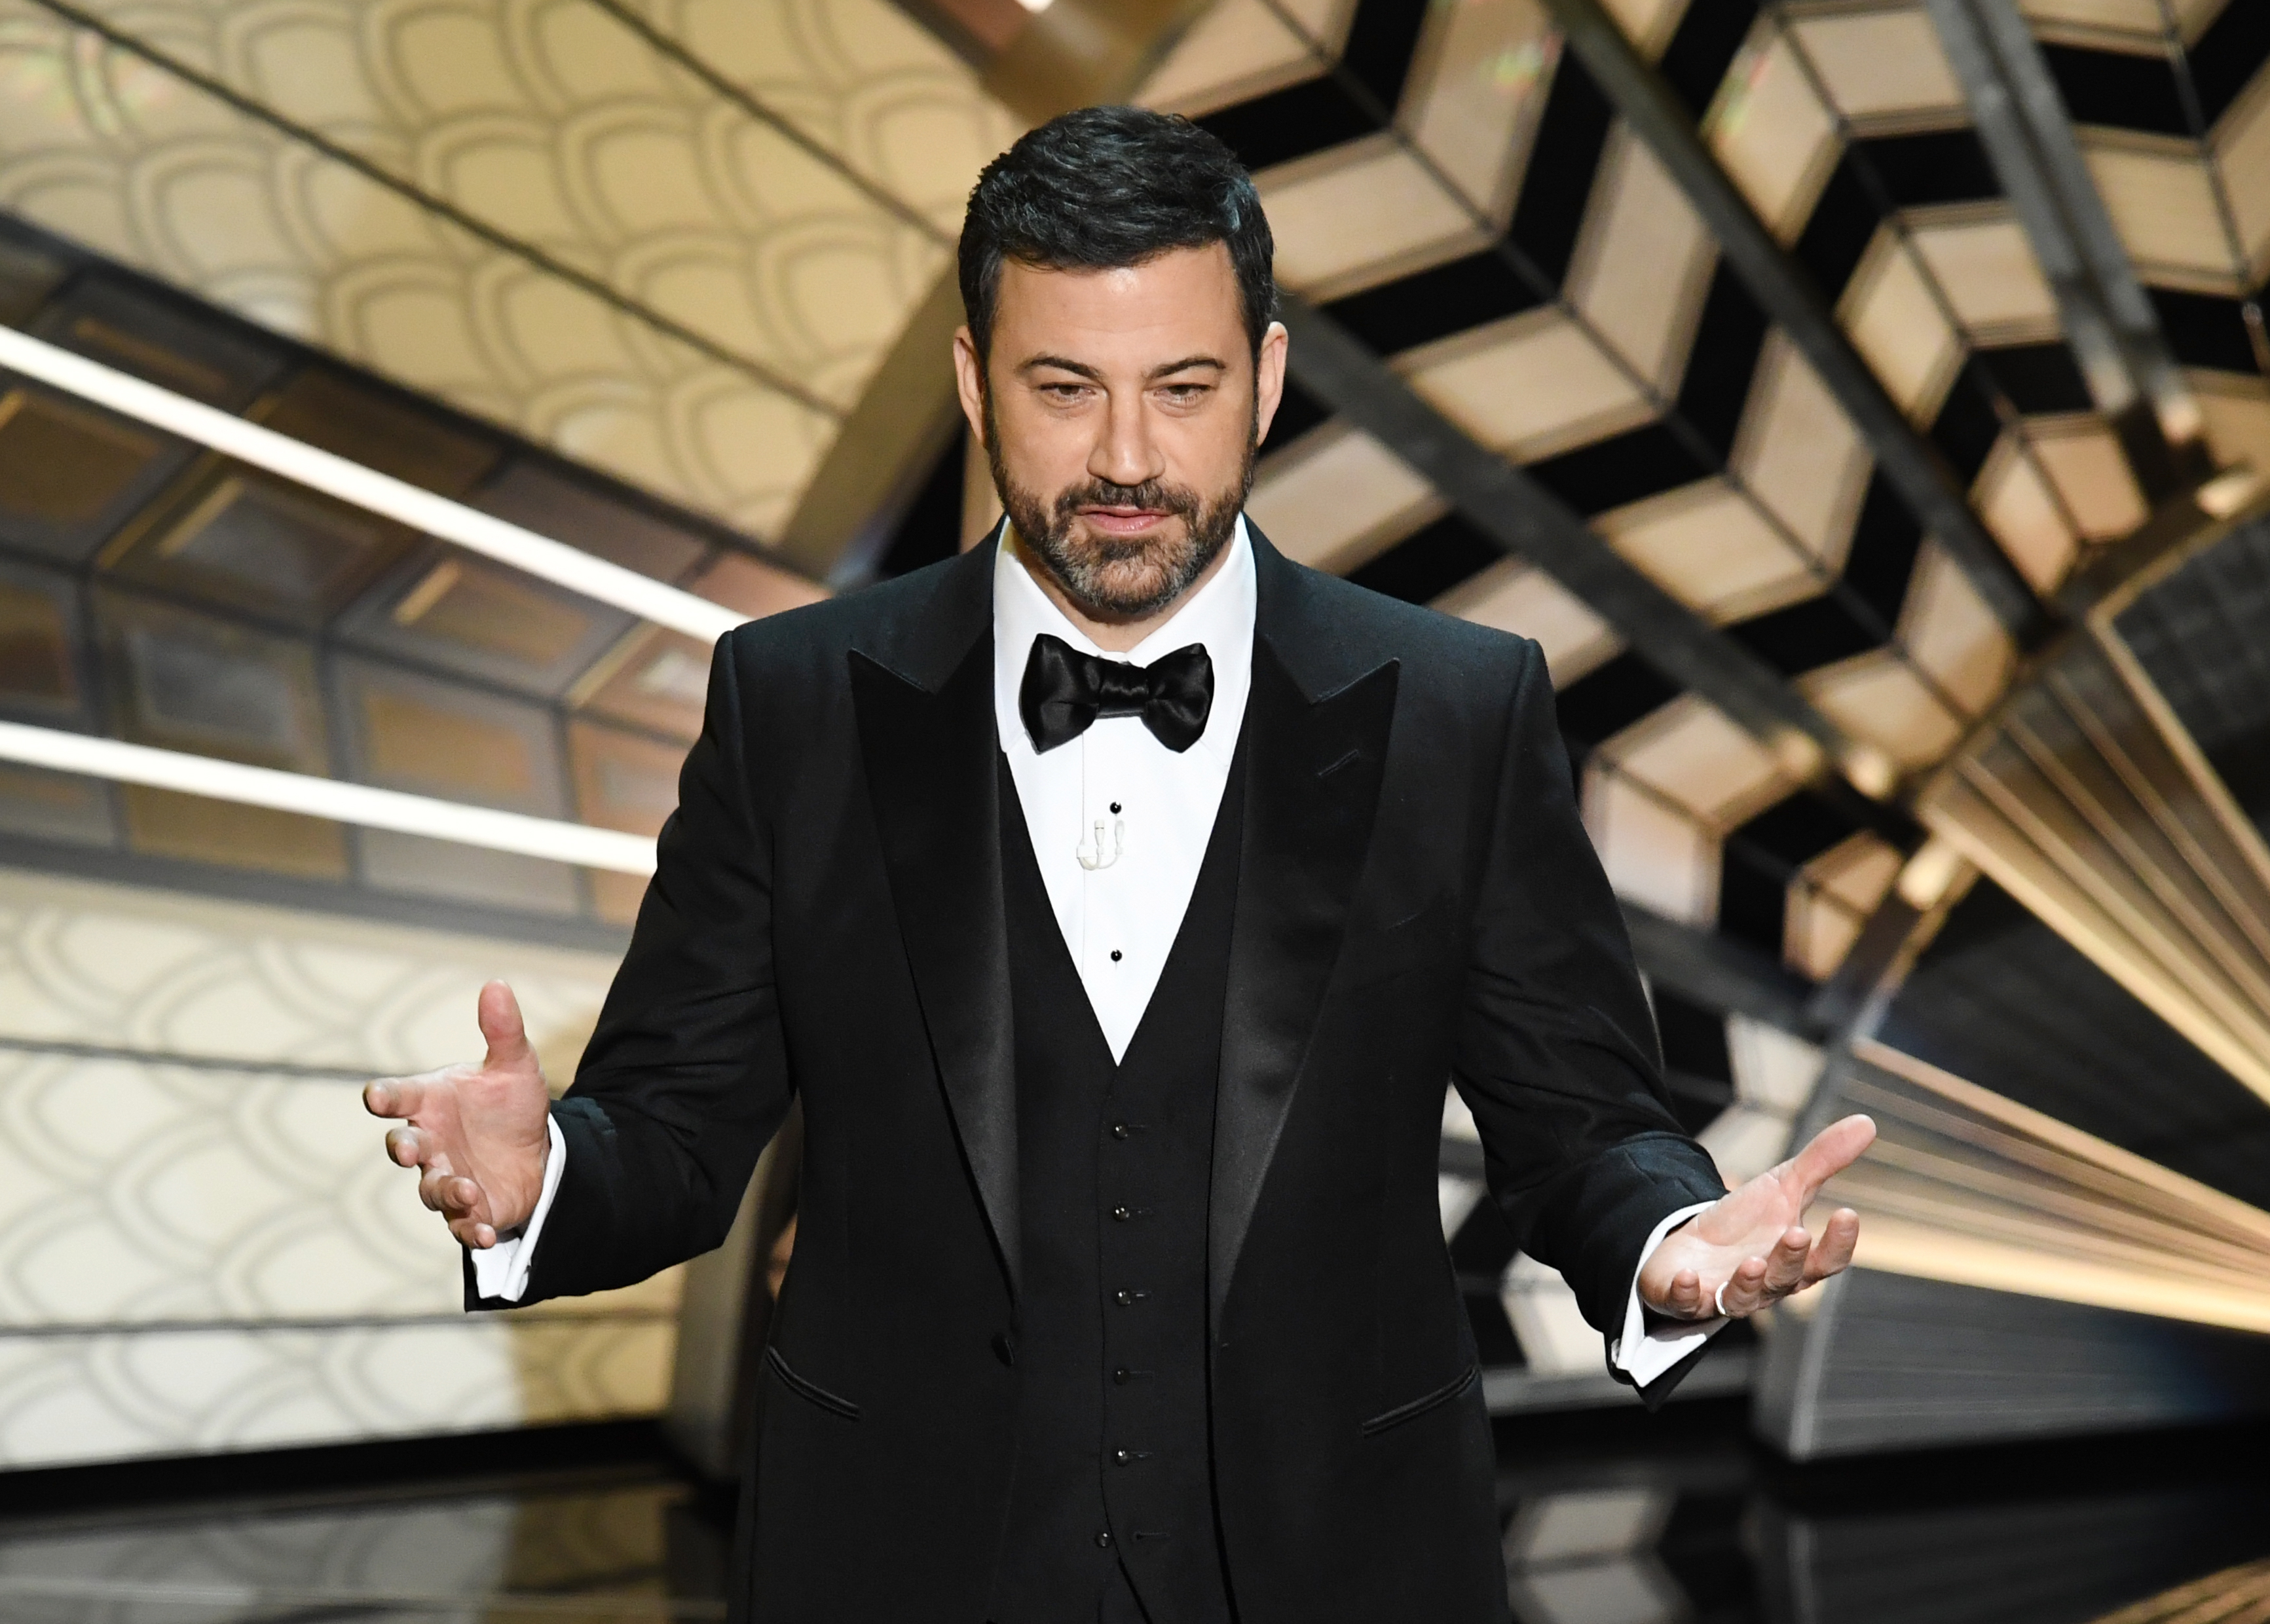 HOLLYWOOD, CA - FEBRUARY 26: Host Jimmy Kimmel onstage during the 89th Annual Academy Awards at Hollywood & Highland Center on February 26, 2017 in Hollywood, California. (Photo by Kevin Winter/Getty Images)